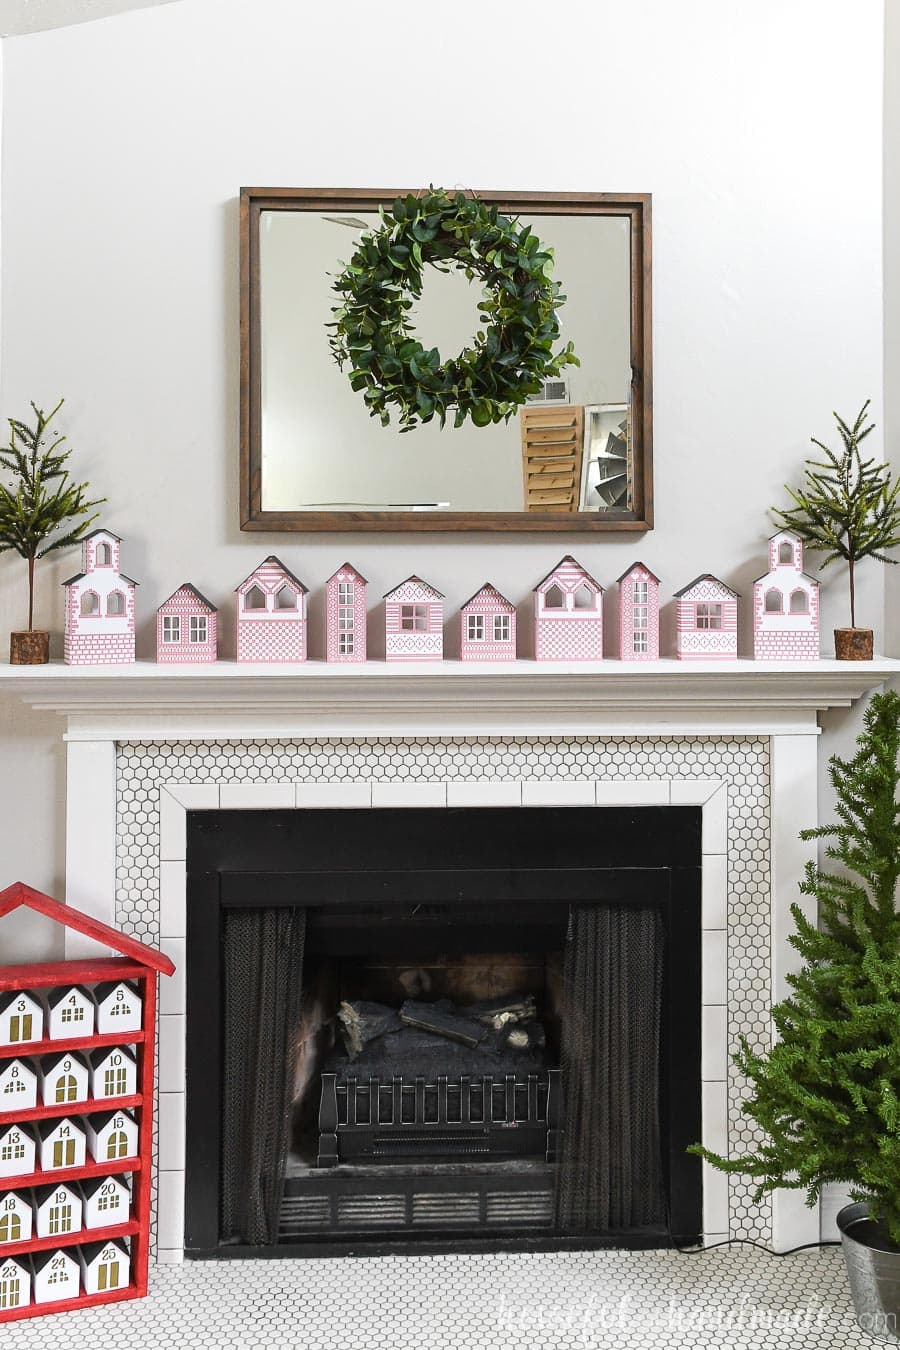 Fireplace and mantel decorated for Christmas with an advent calendar and small tree on the hearth and DIY paper Christmas village on the mantel.